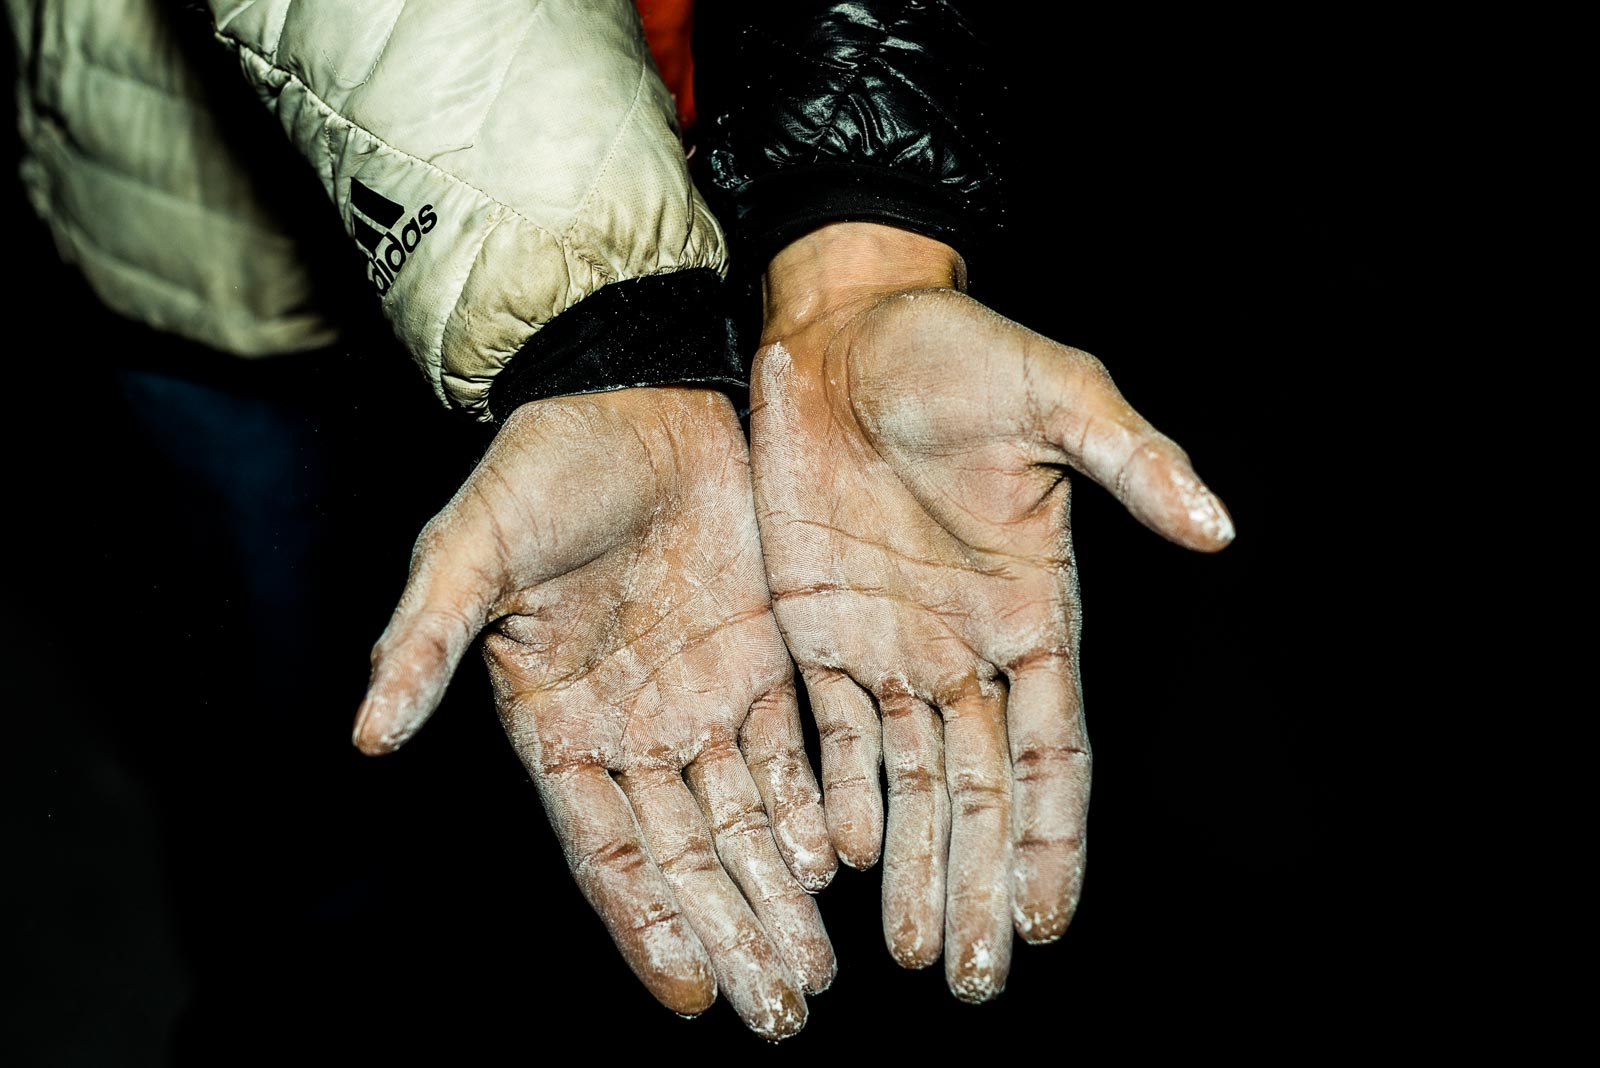 Hands of top French climber Mélissa Le Nevé